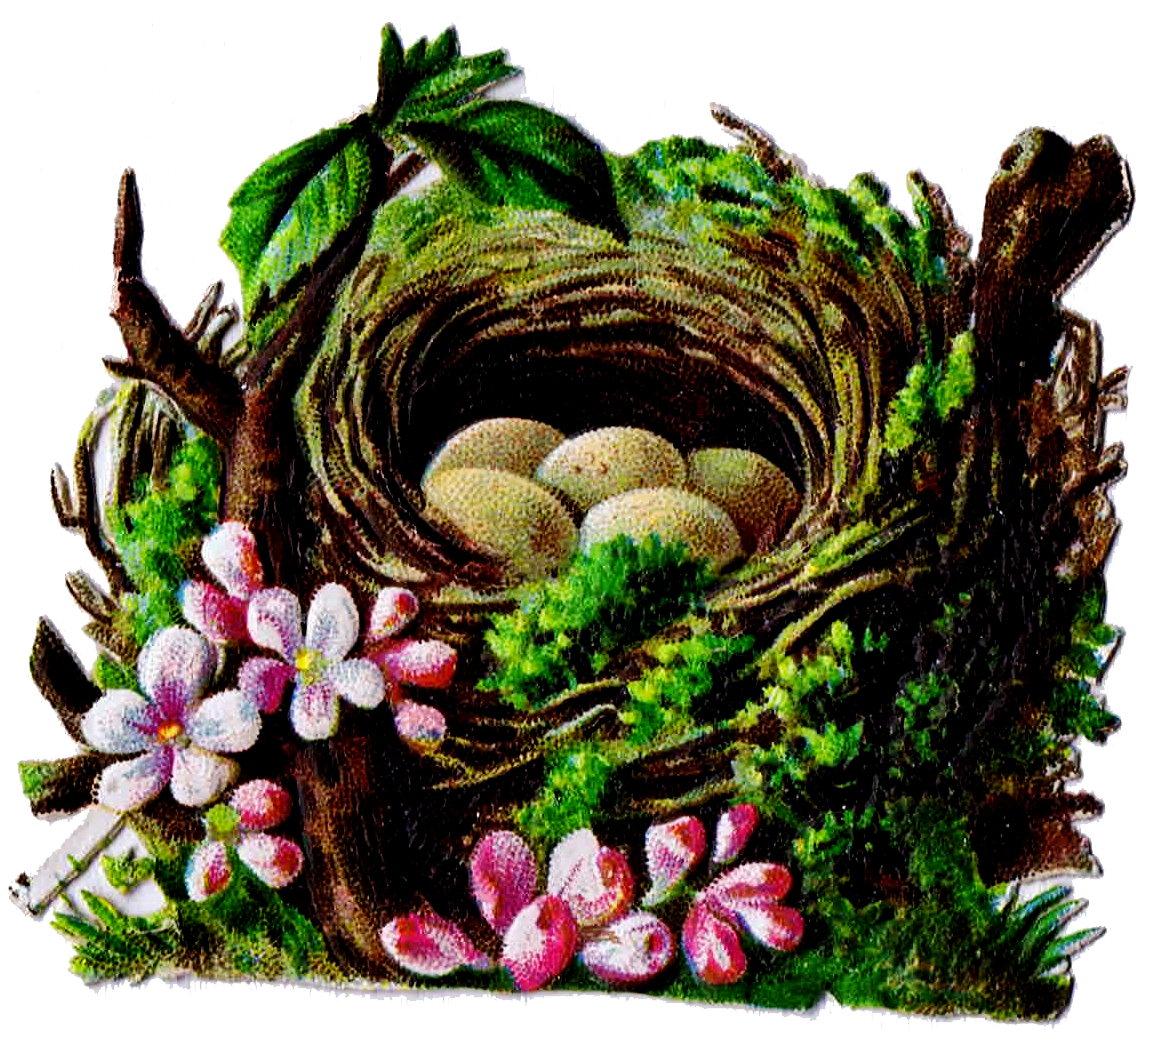 Nest clipart speckled egg. Bird and graphics antique